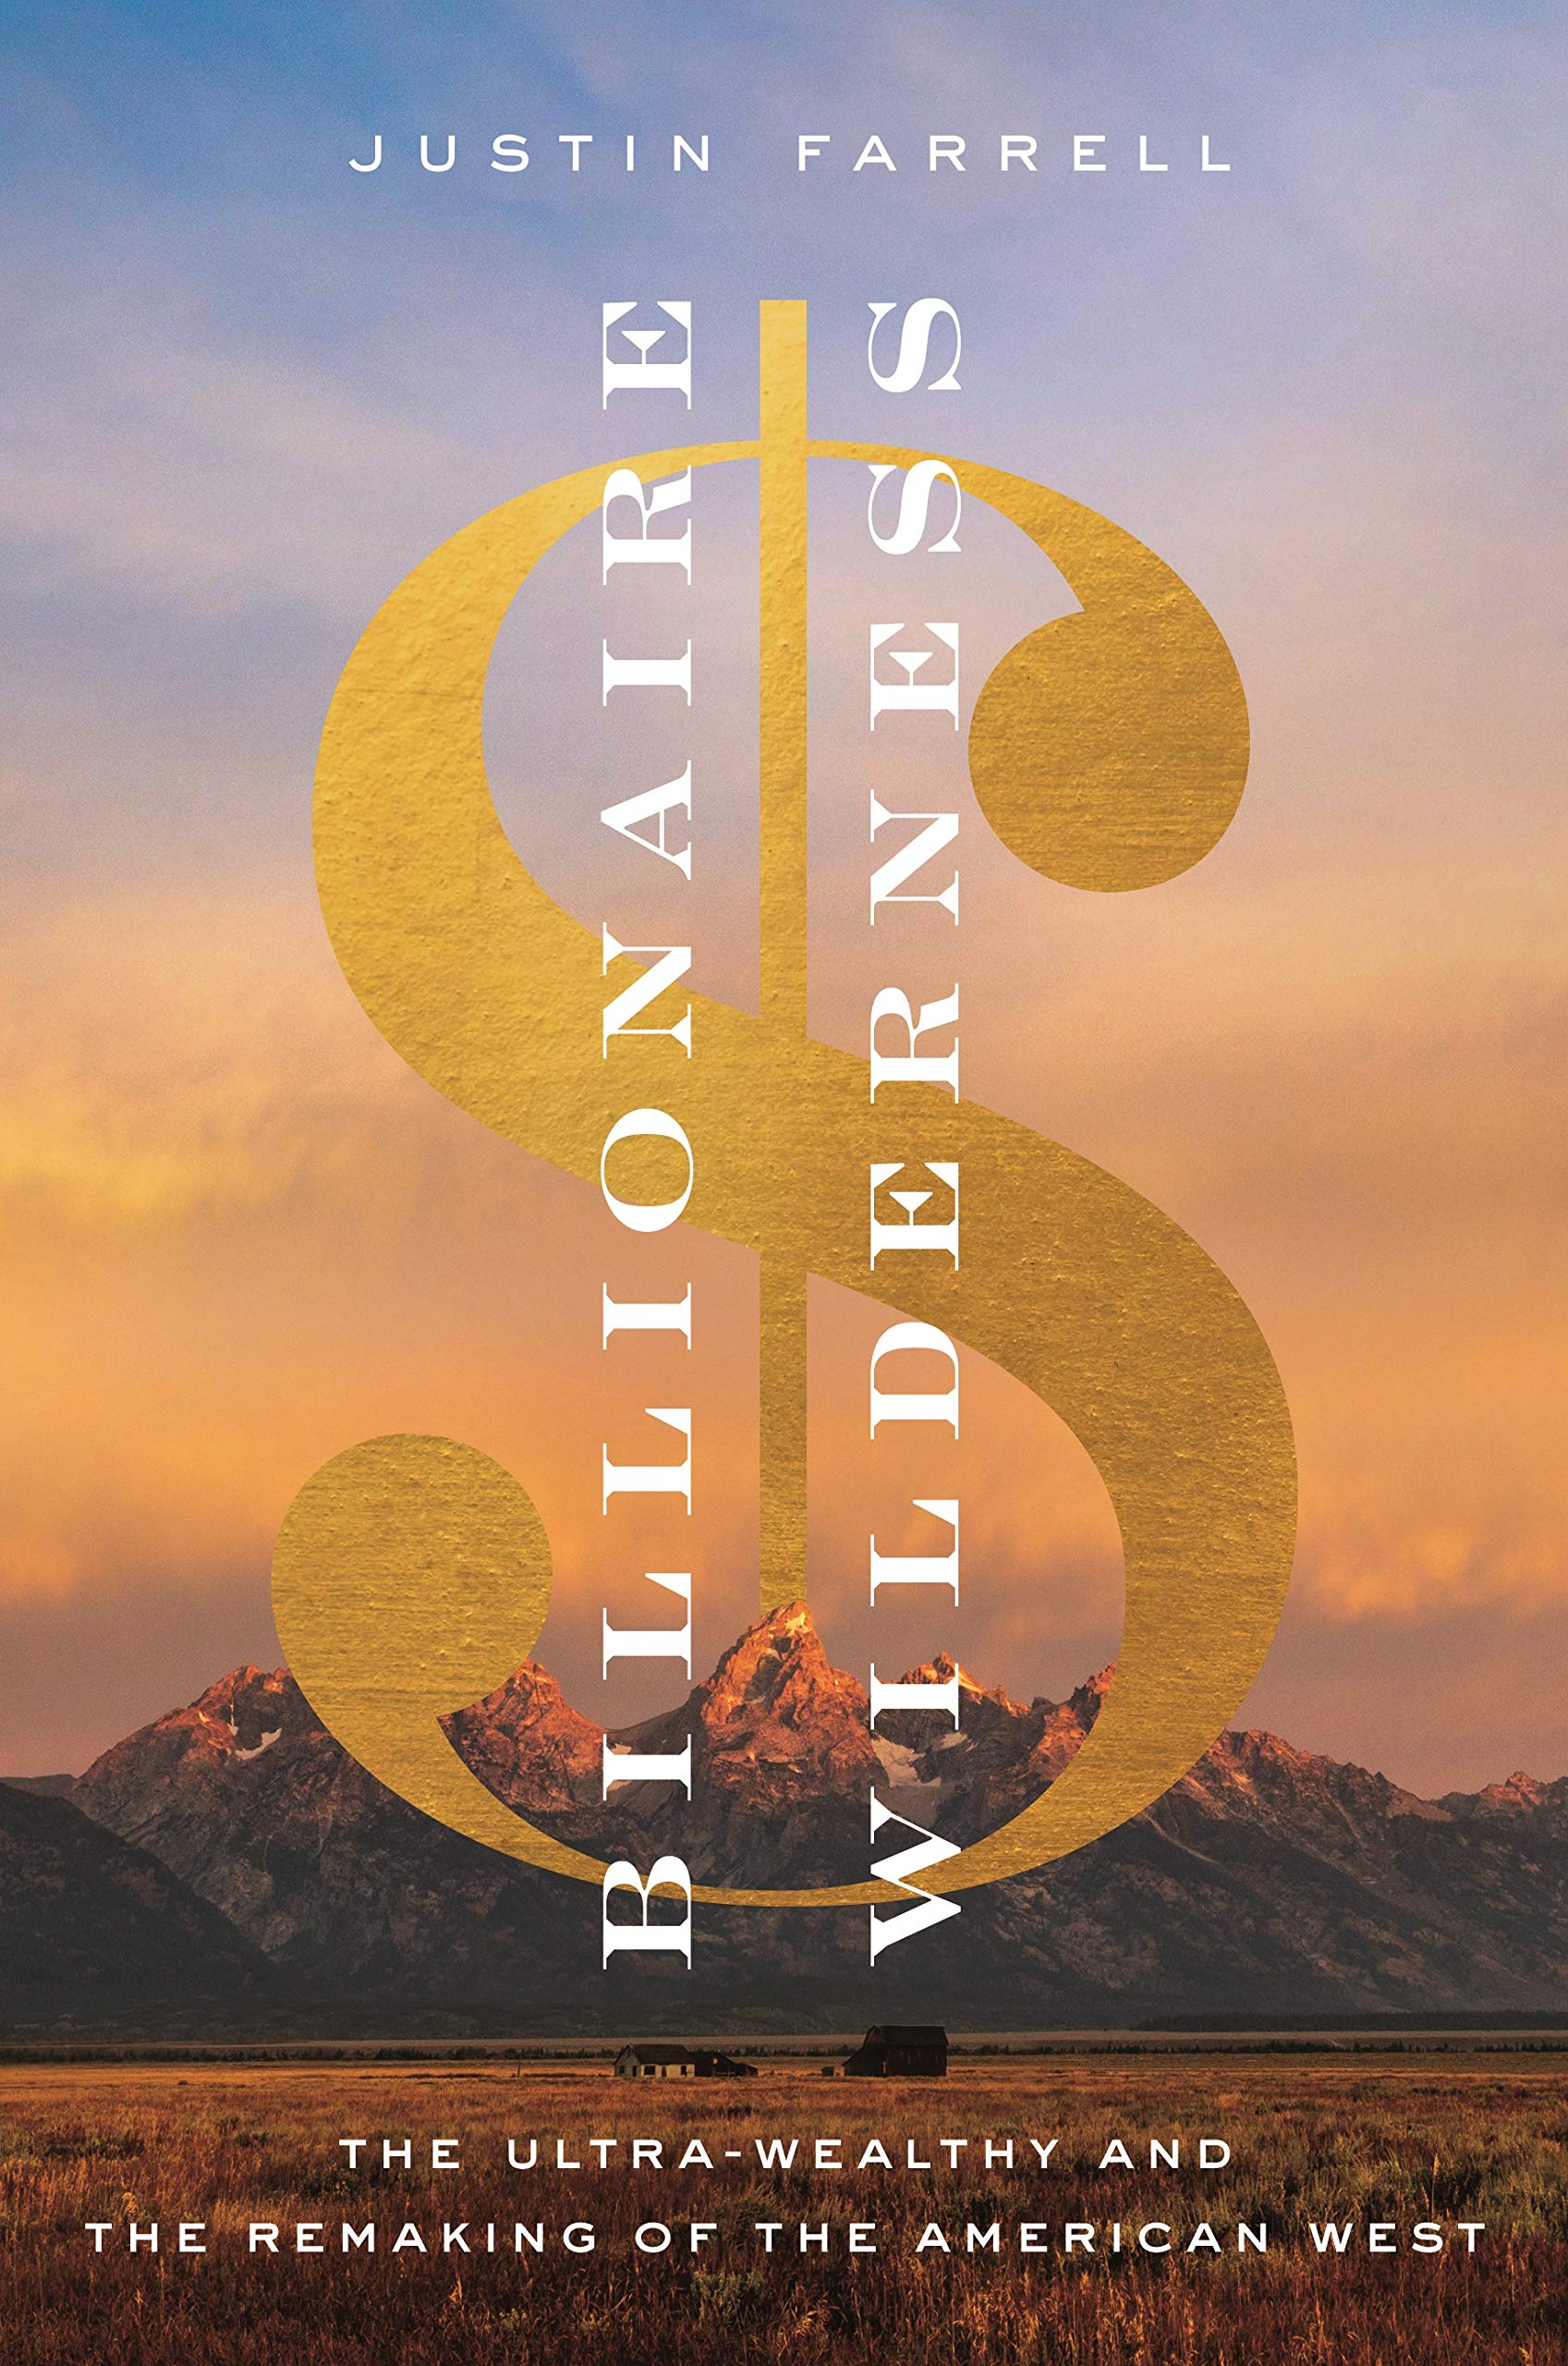 Billionaire Wilderness: The Ultra-Wealthy and the Remaking of the American West (Princeton Studies in Cultural Sociology)